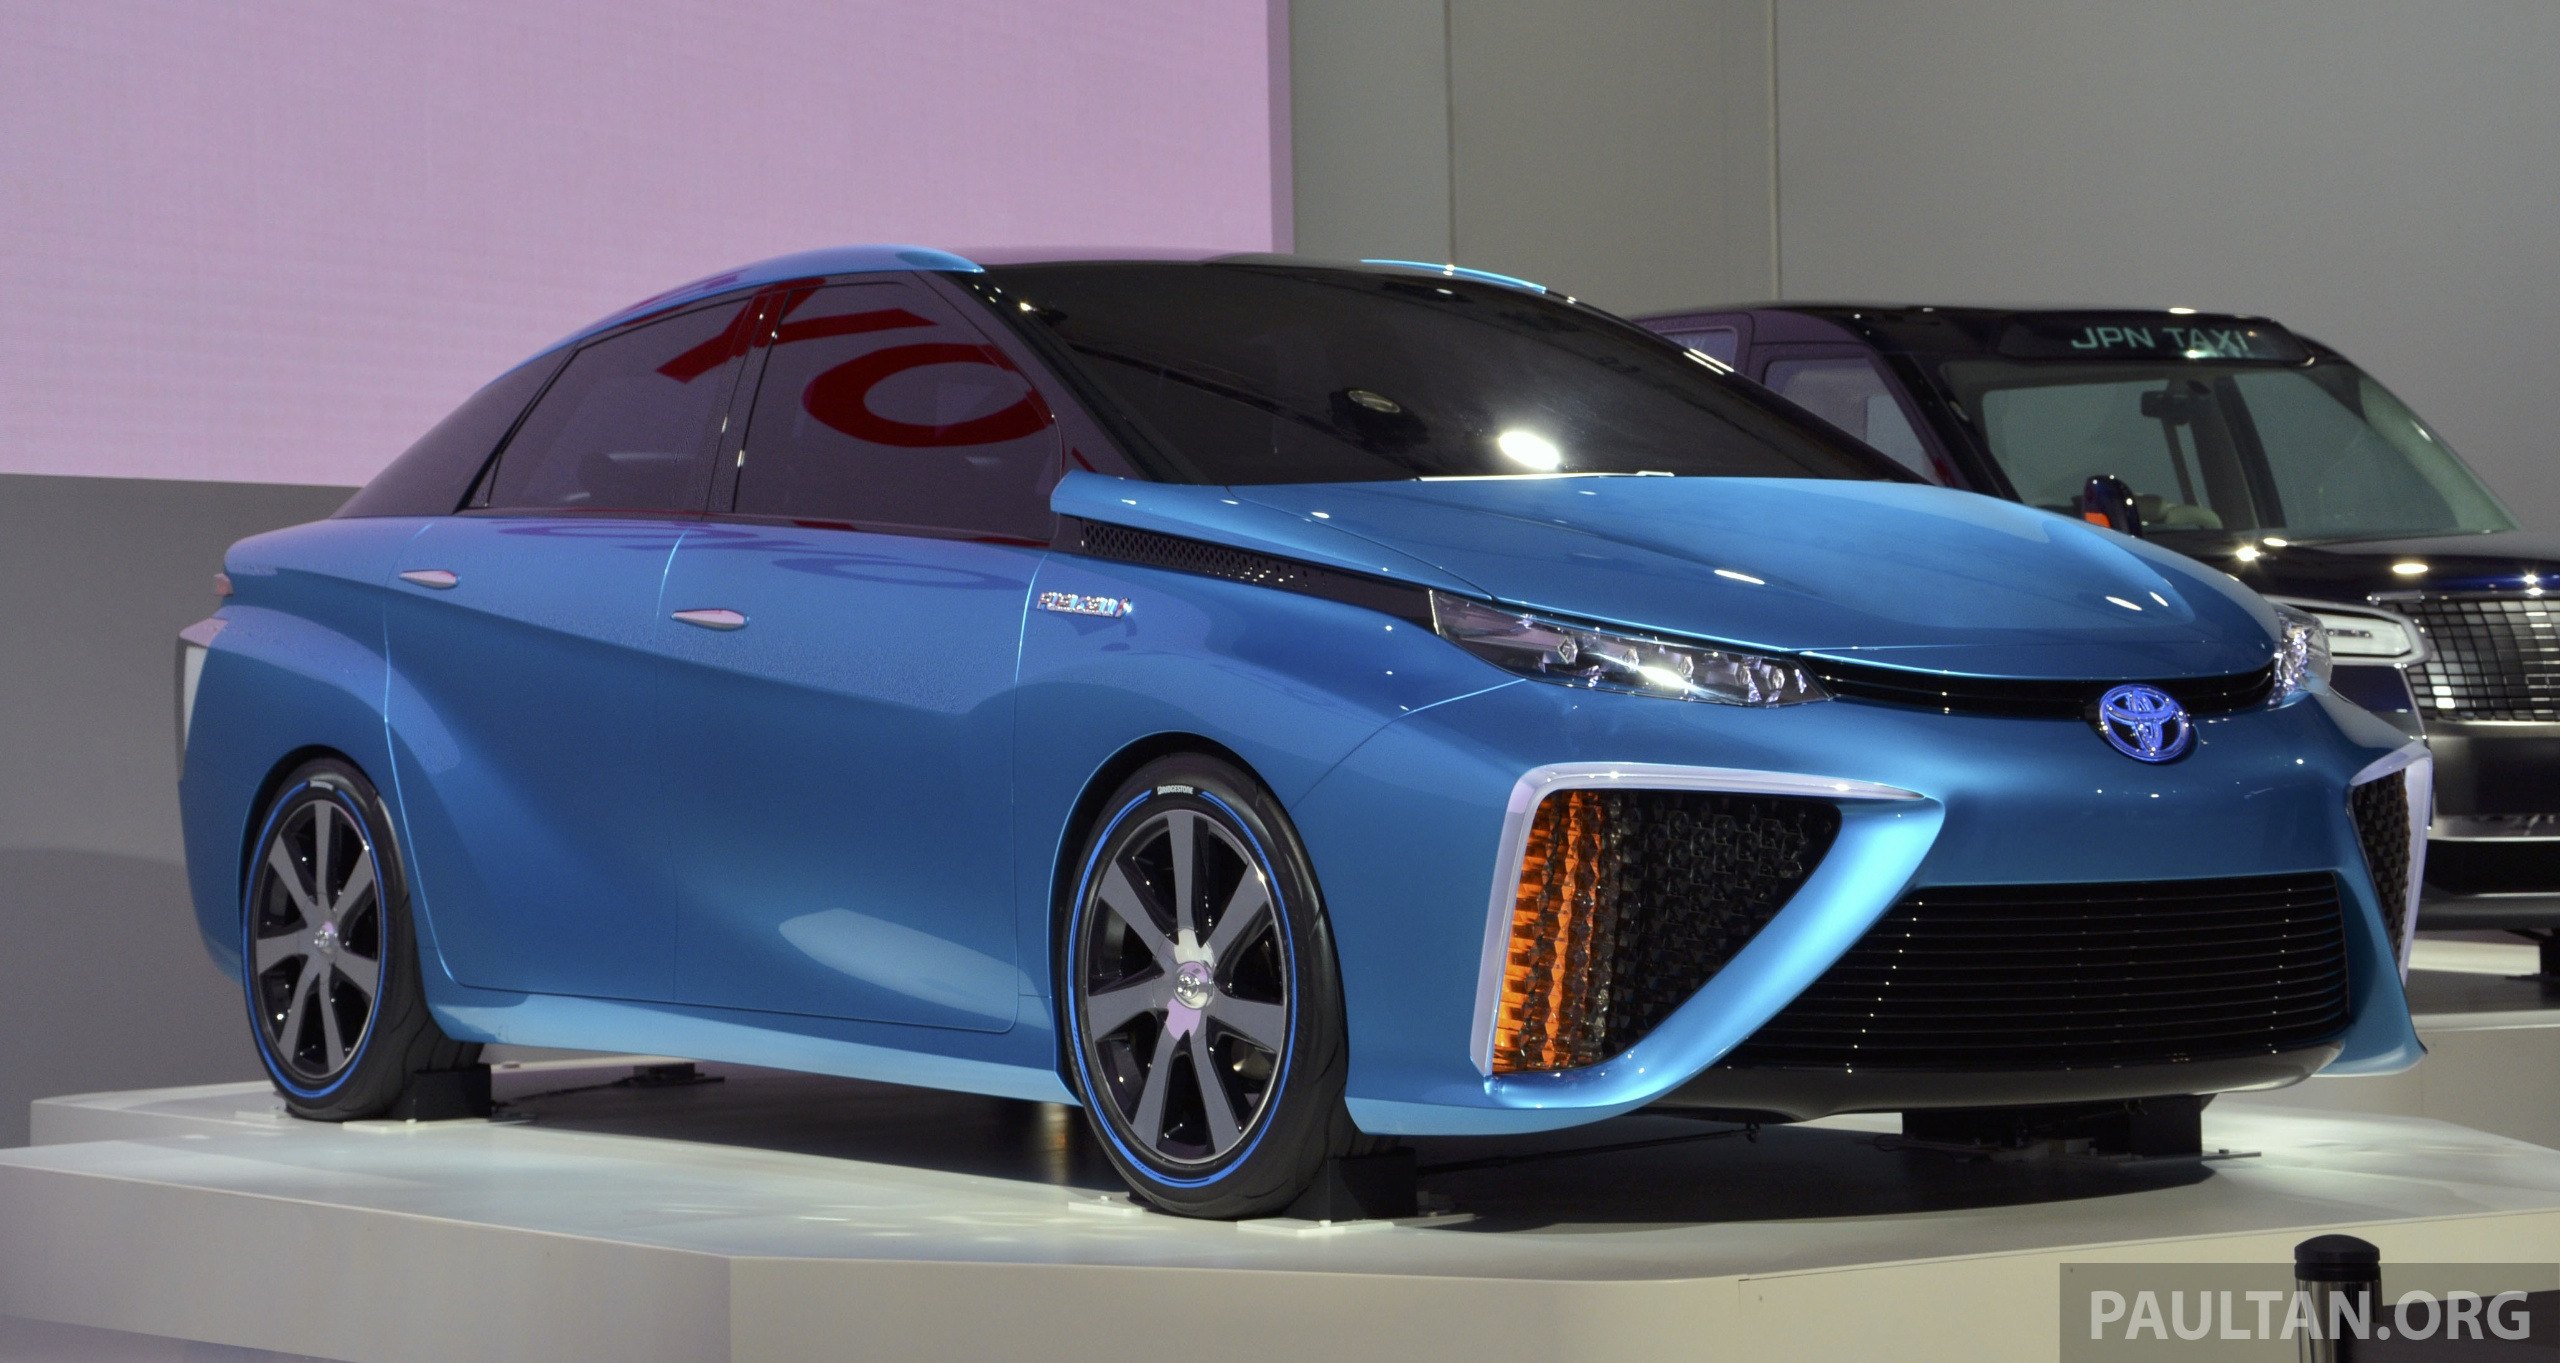 Tokyo 2013 Toyota Fcv Concept Arrives In 2015 Paul Tan